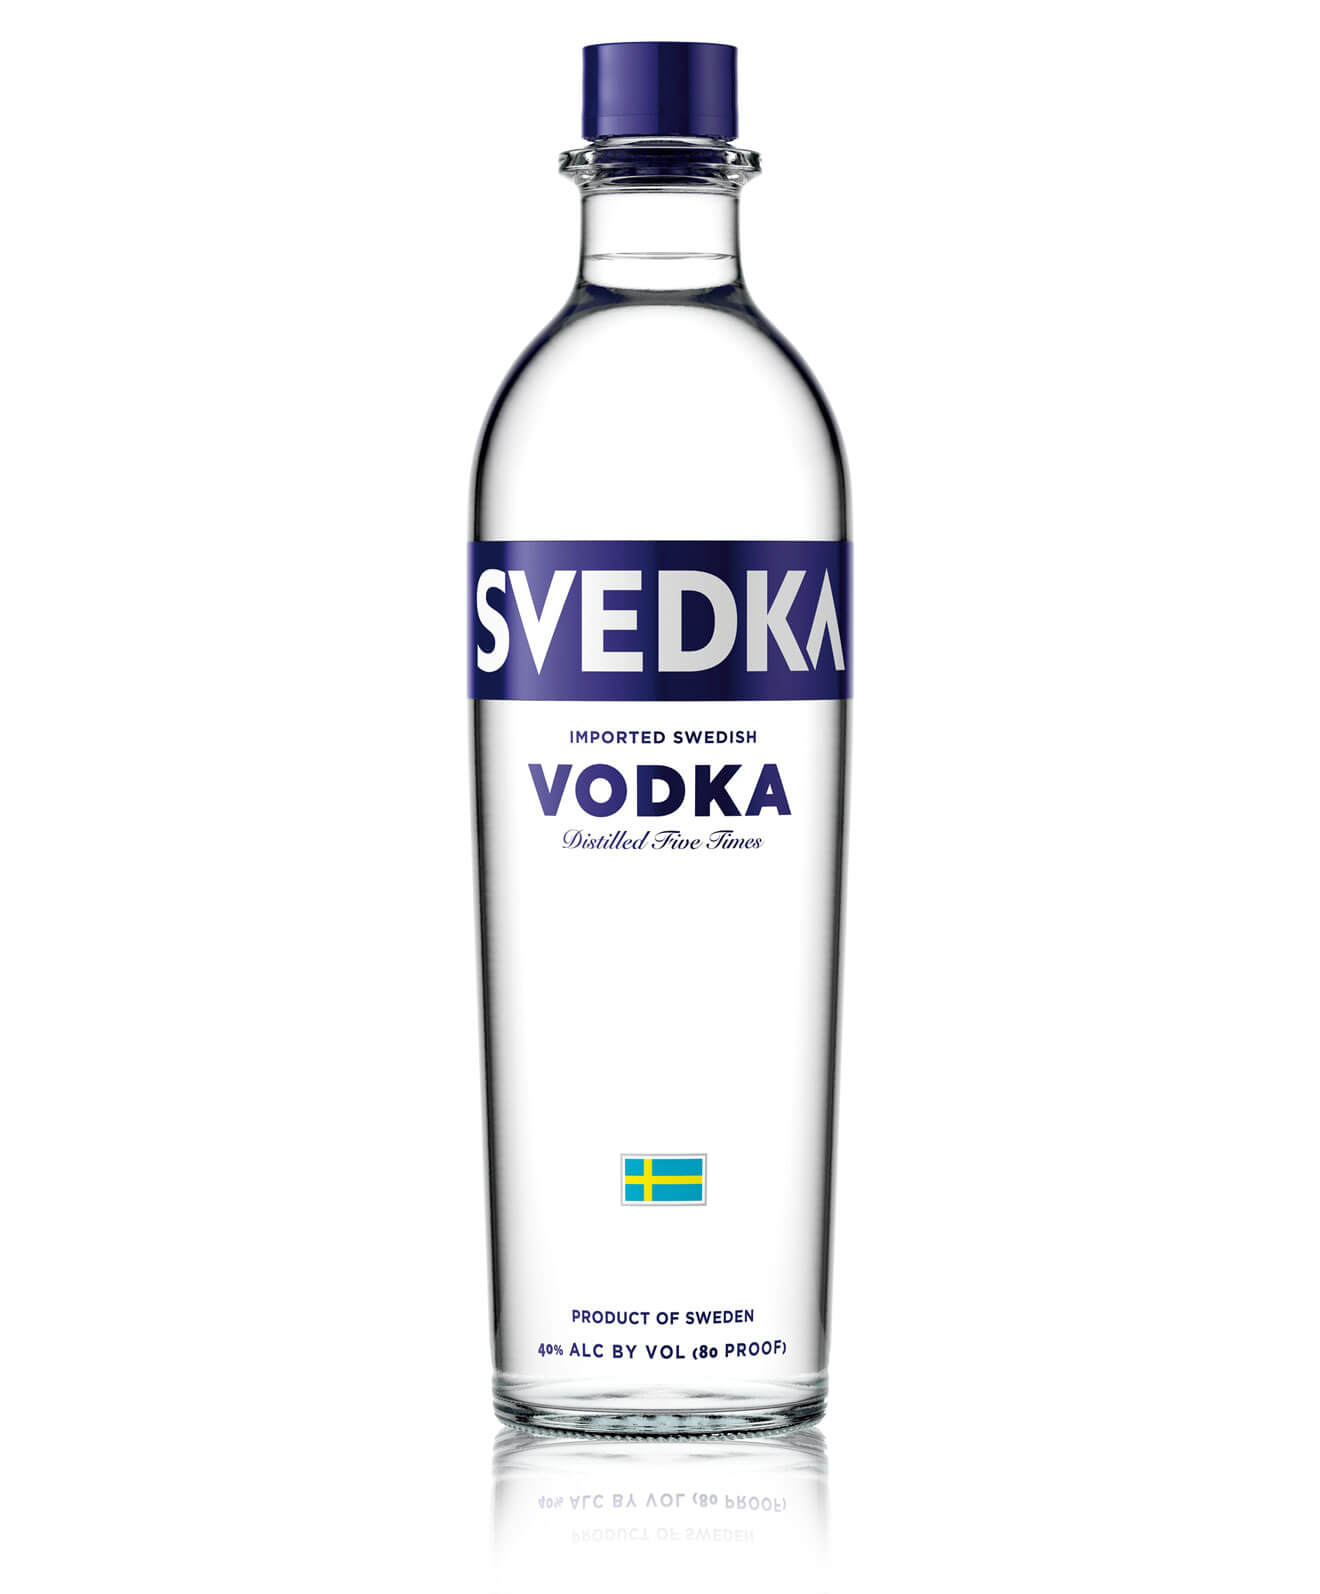 SVEDKA Takes Title of Top Imported Vodka in the U.S., industry news